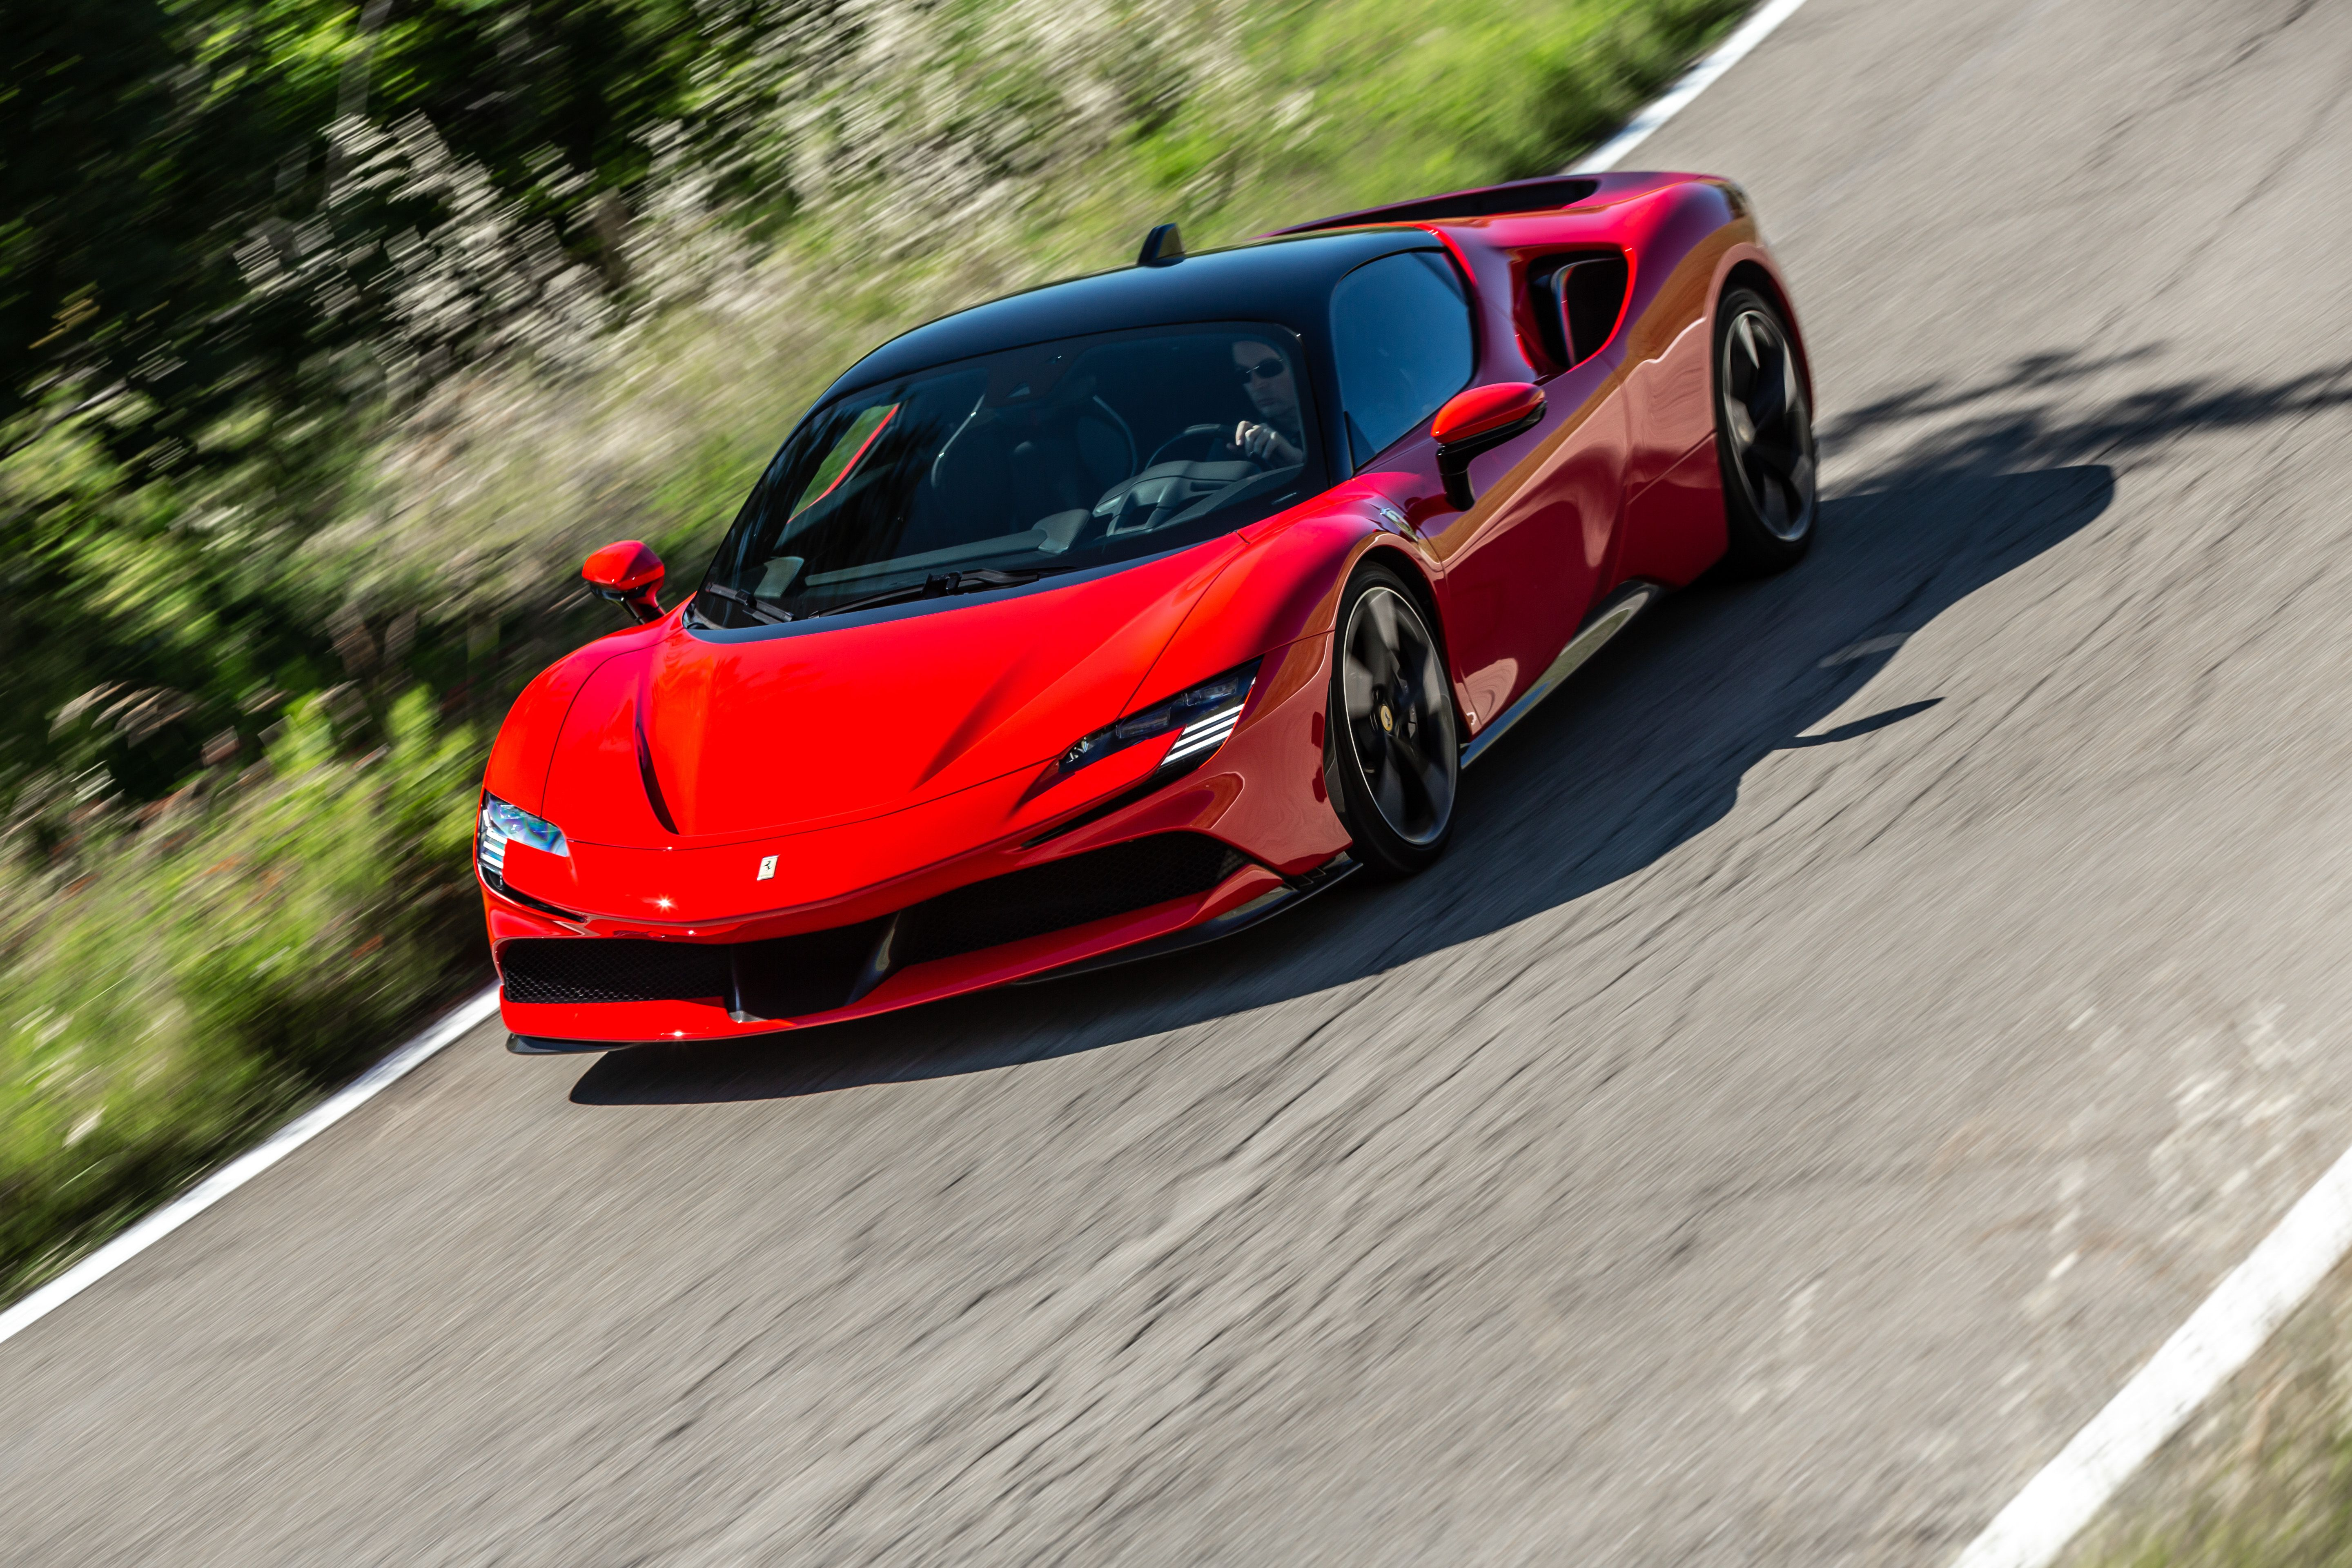 The 2021 Ferrari Sf90 Stradale Hypercar Goes From Silent To Violent